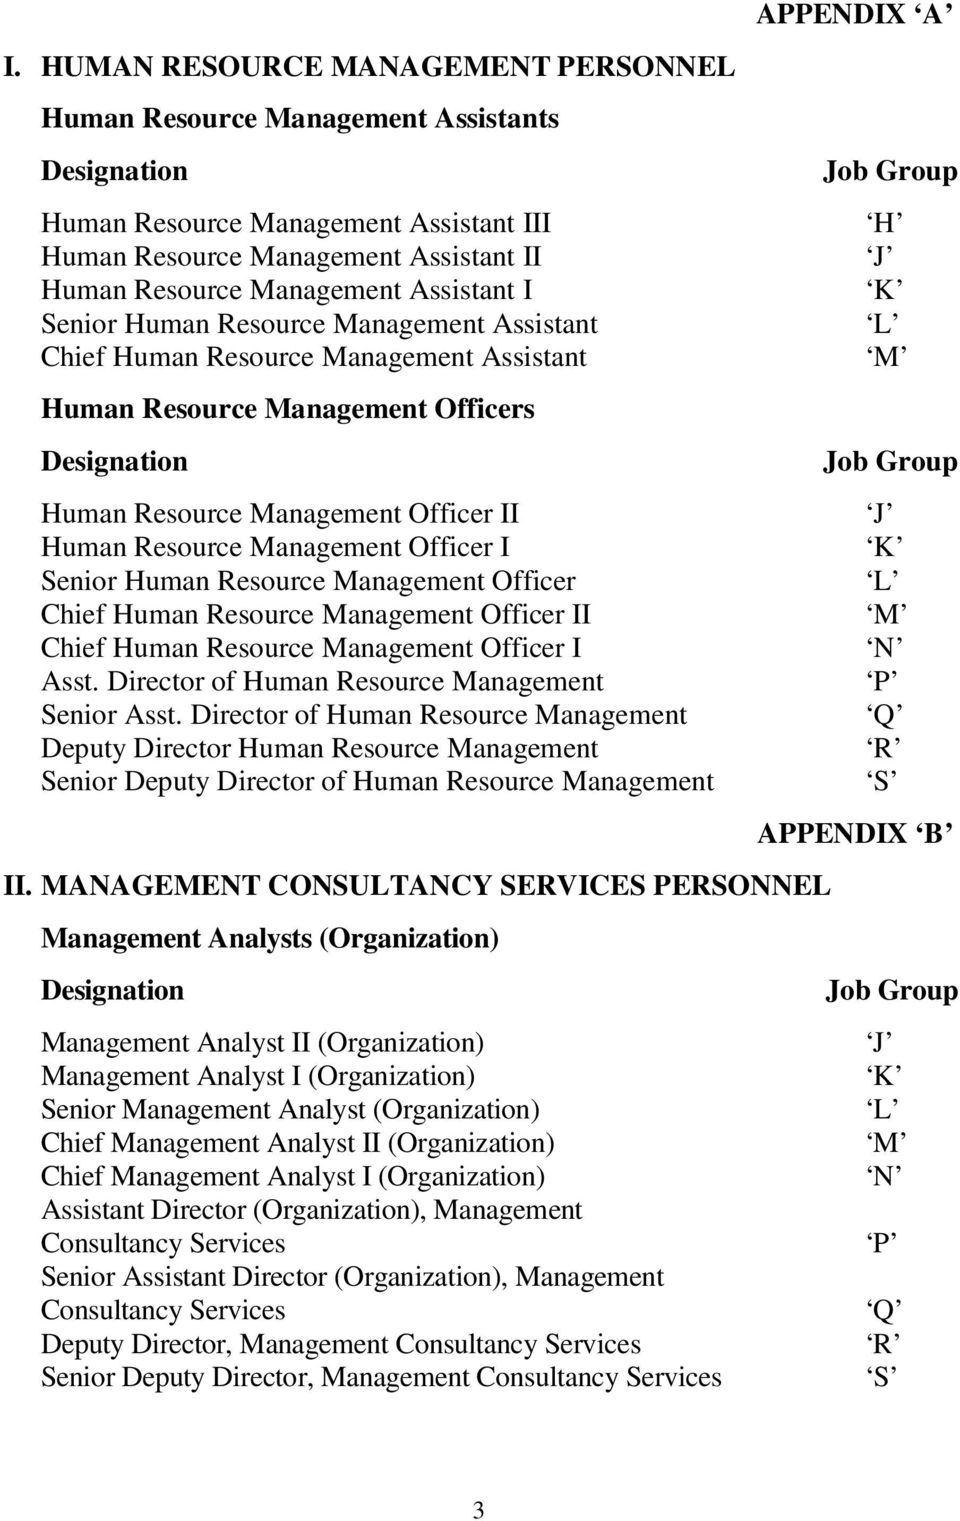 Management Assistant I K Senior Human Resource Management Assistant L Chief Human Resource Management Assistant M Human Resource Management Officers Designation Job Group Human Resource Management